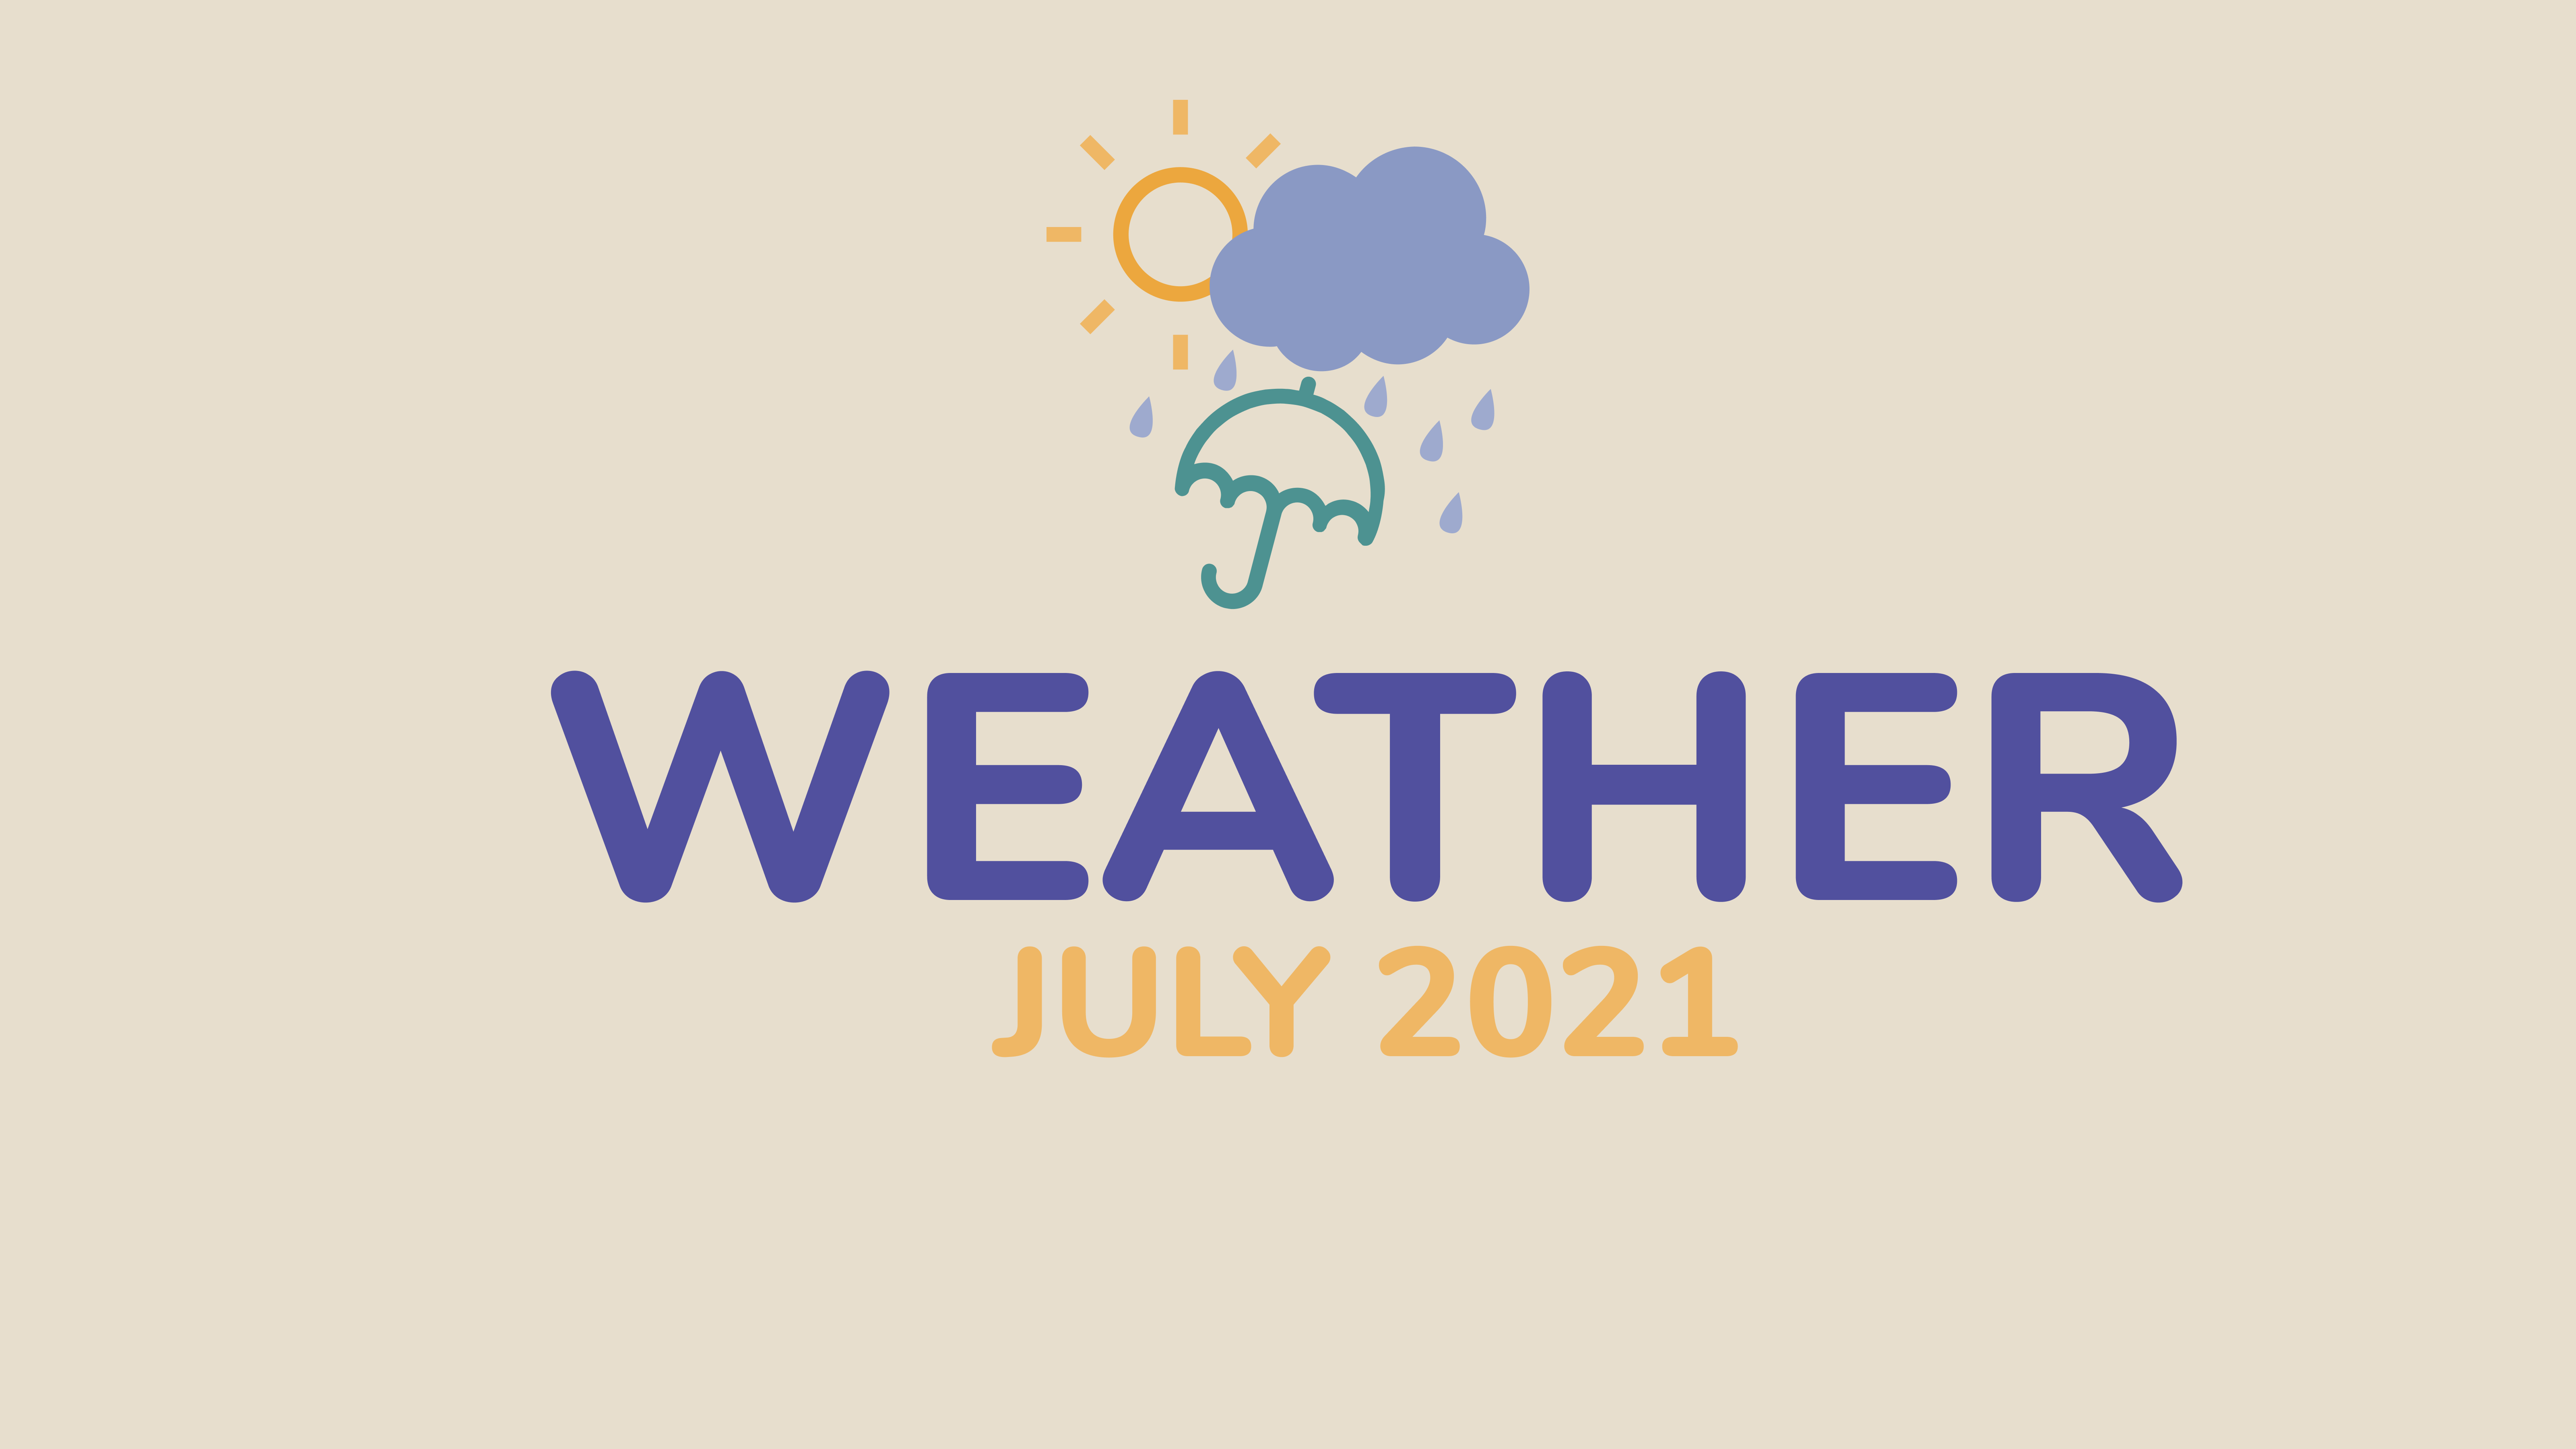 Picture that says WEATHER July 2021